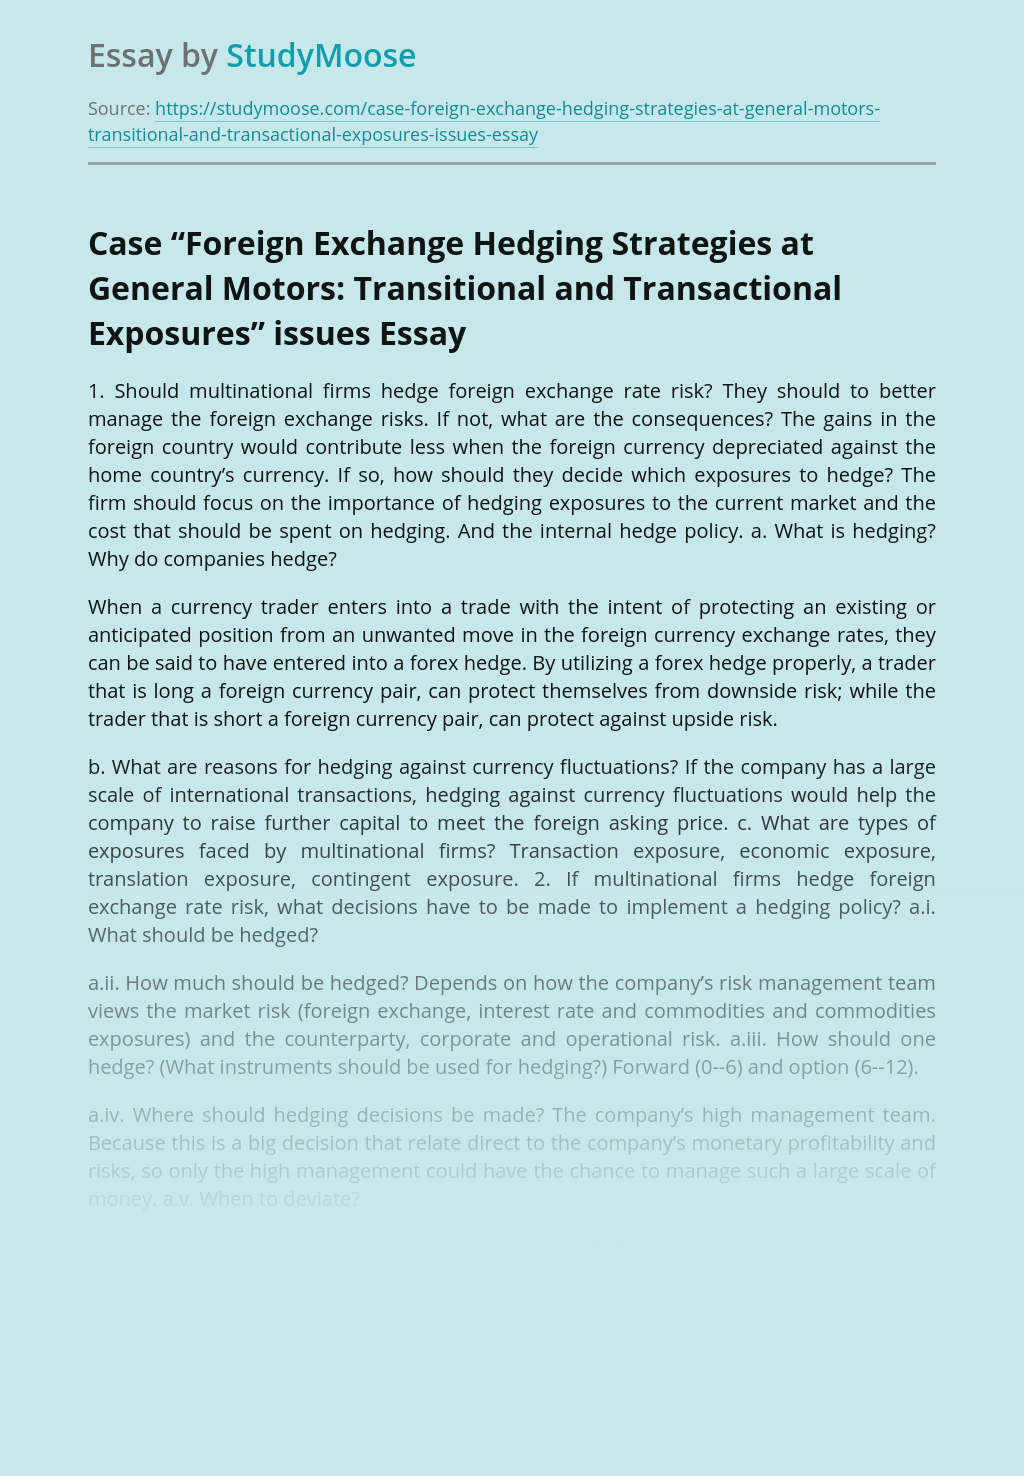 Foreign Exchange Hedging Strategies at General Motors: Transitional and Transactional Exposures